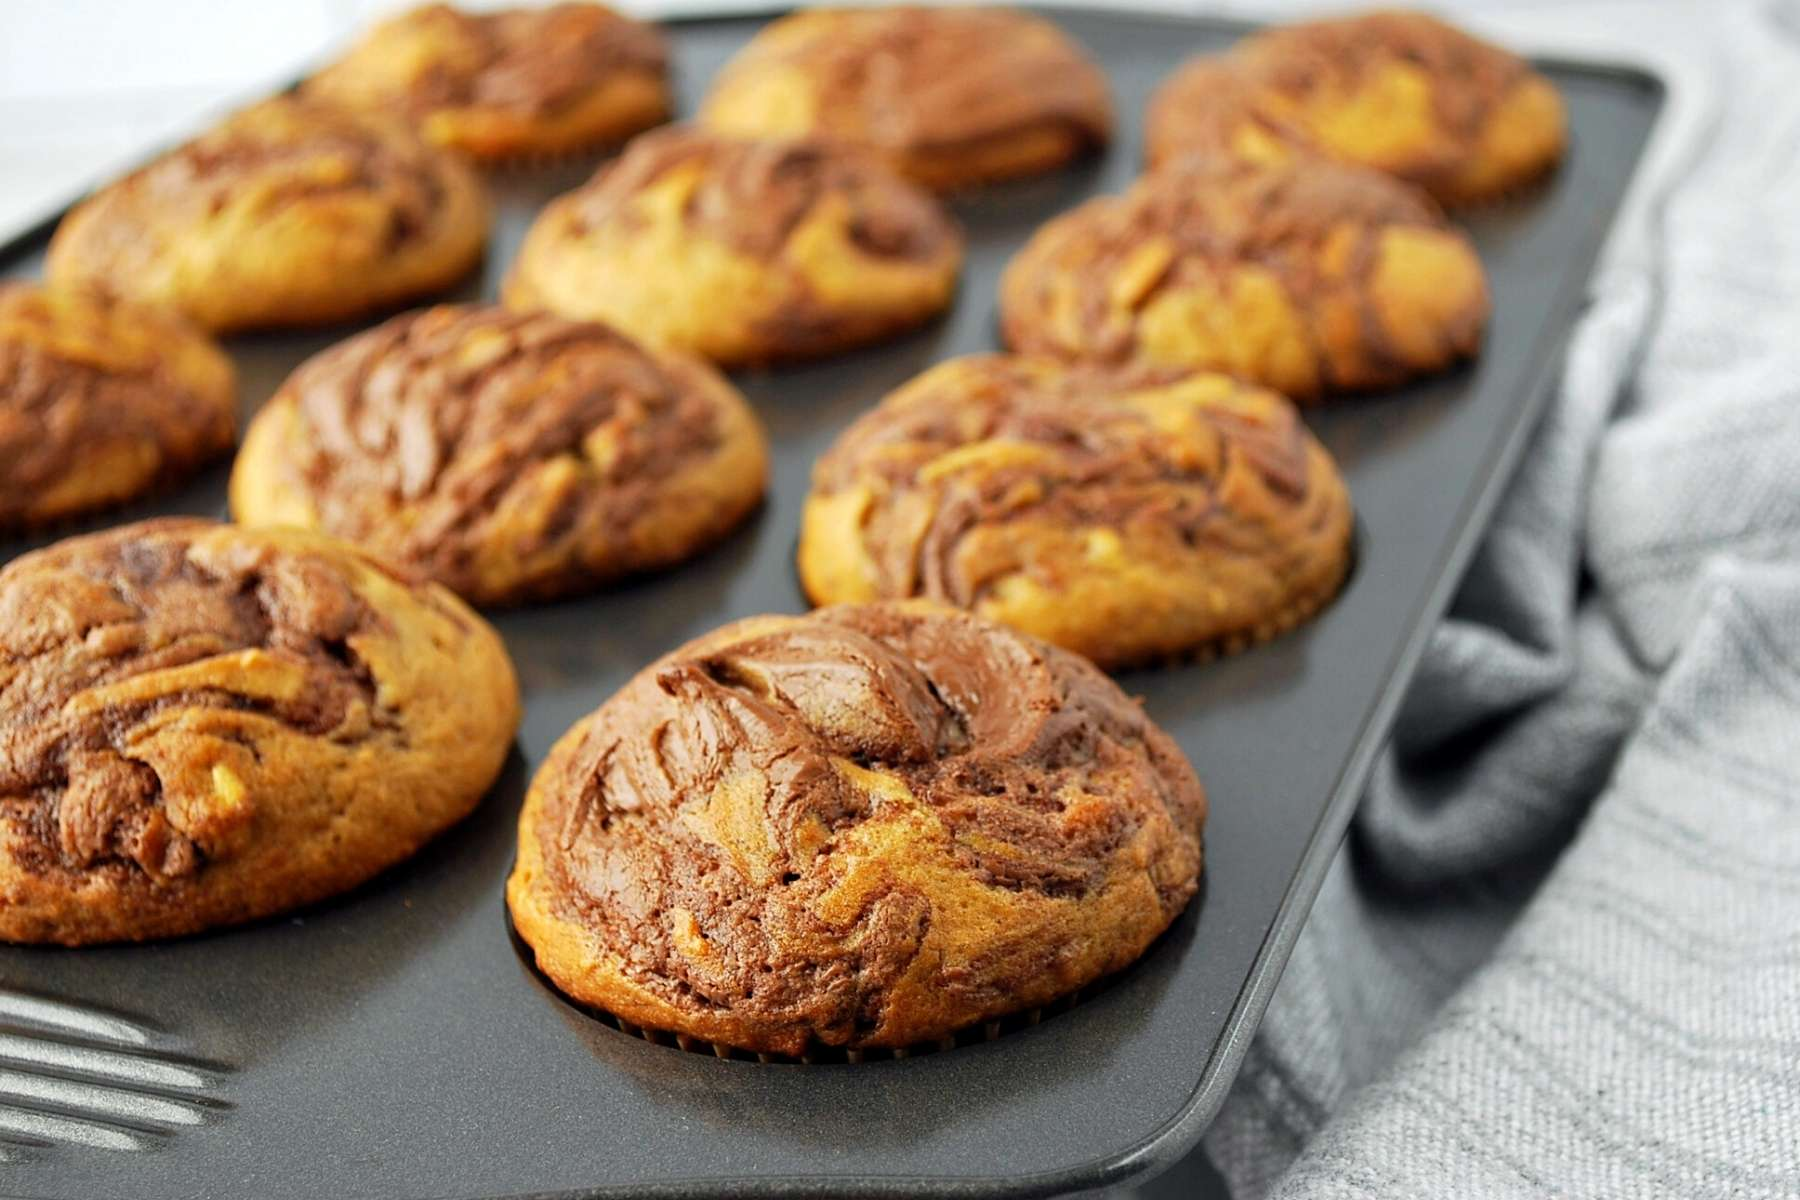 banana nutella muffins freshly baked in a muffin pan